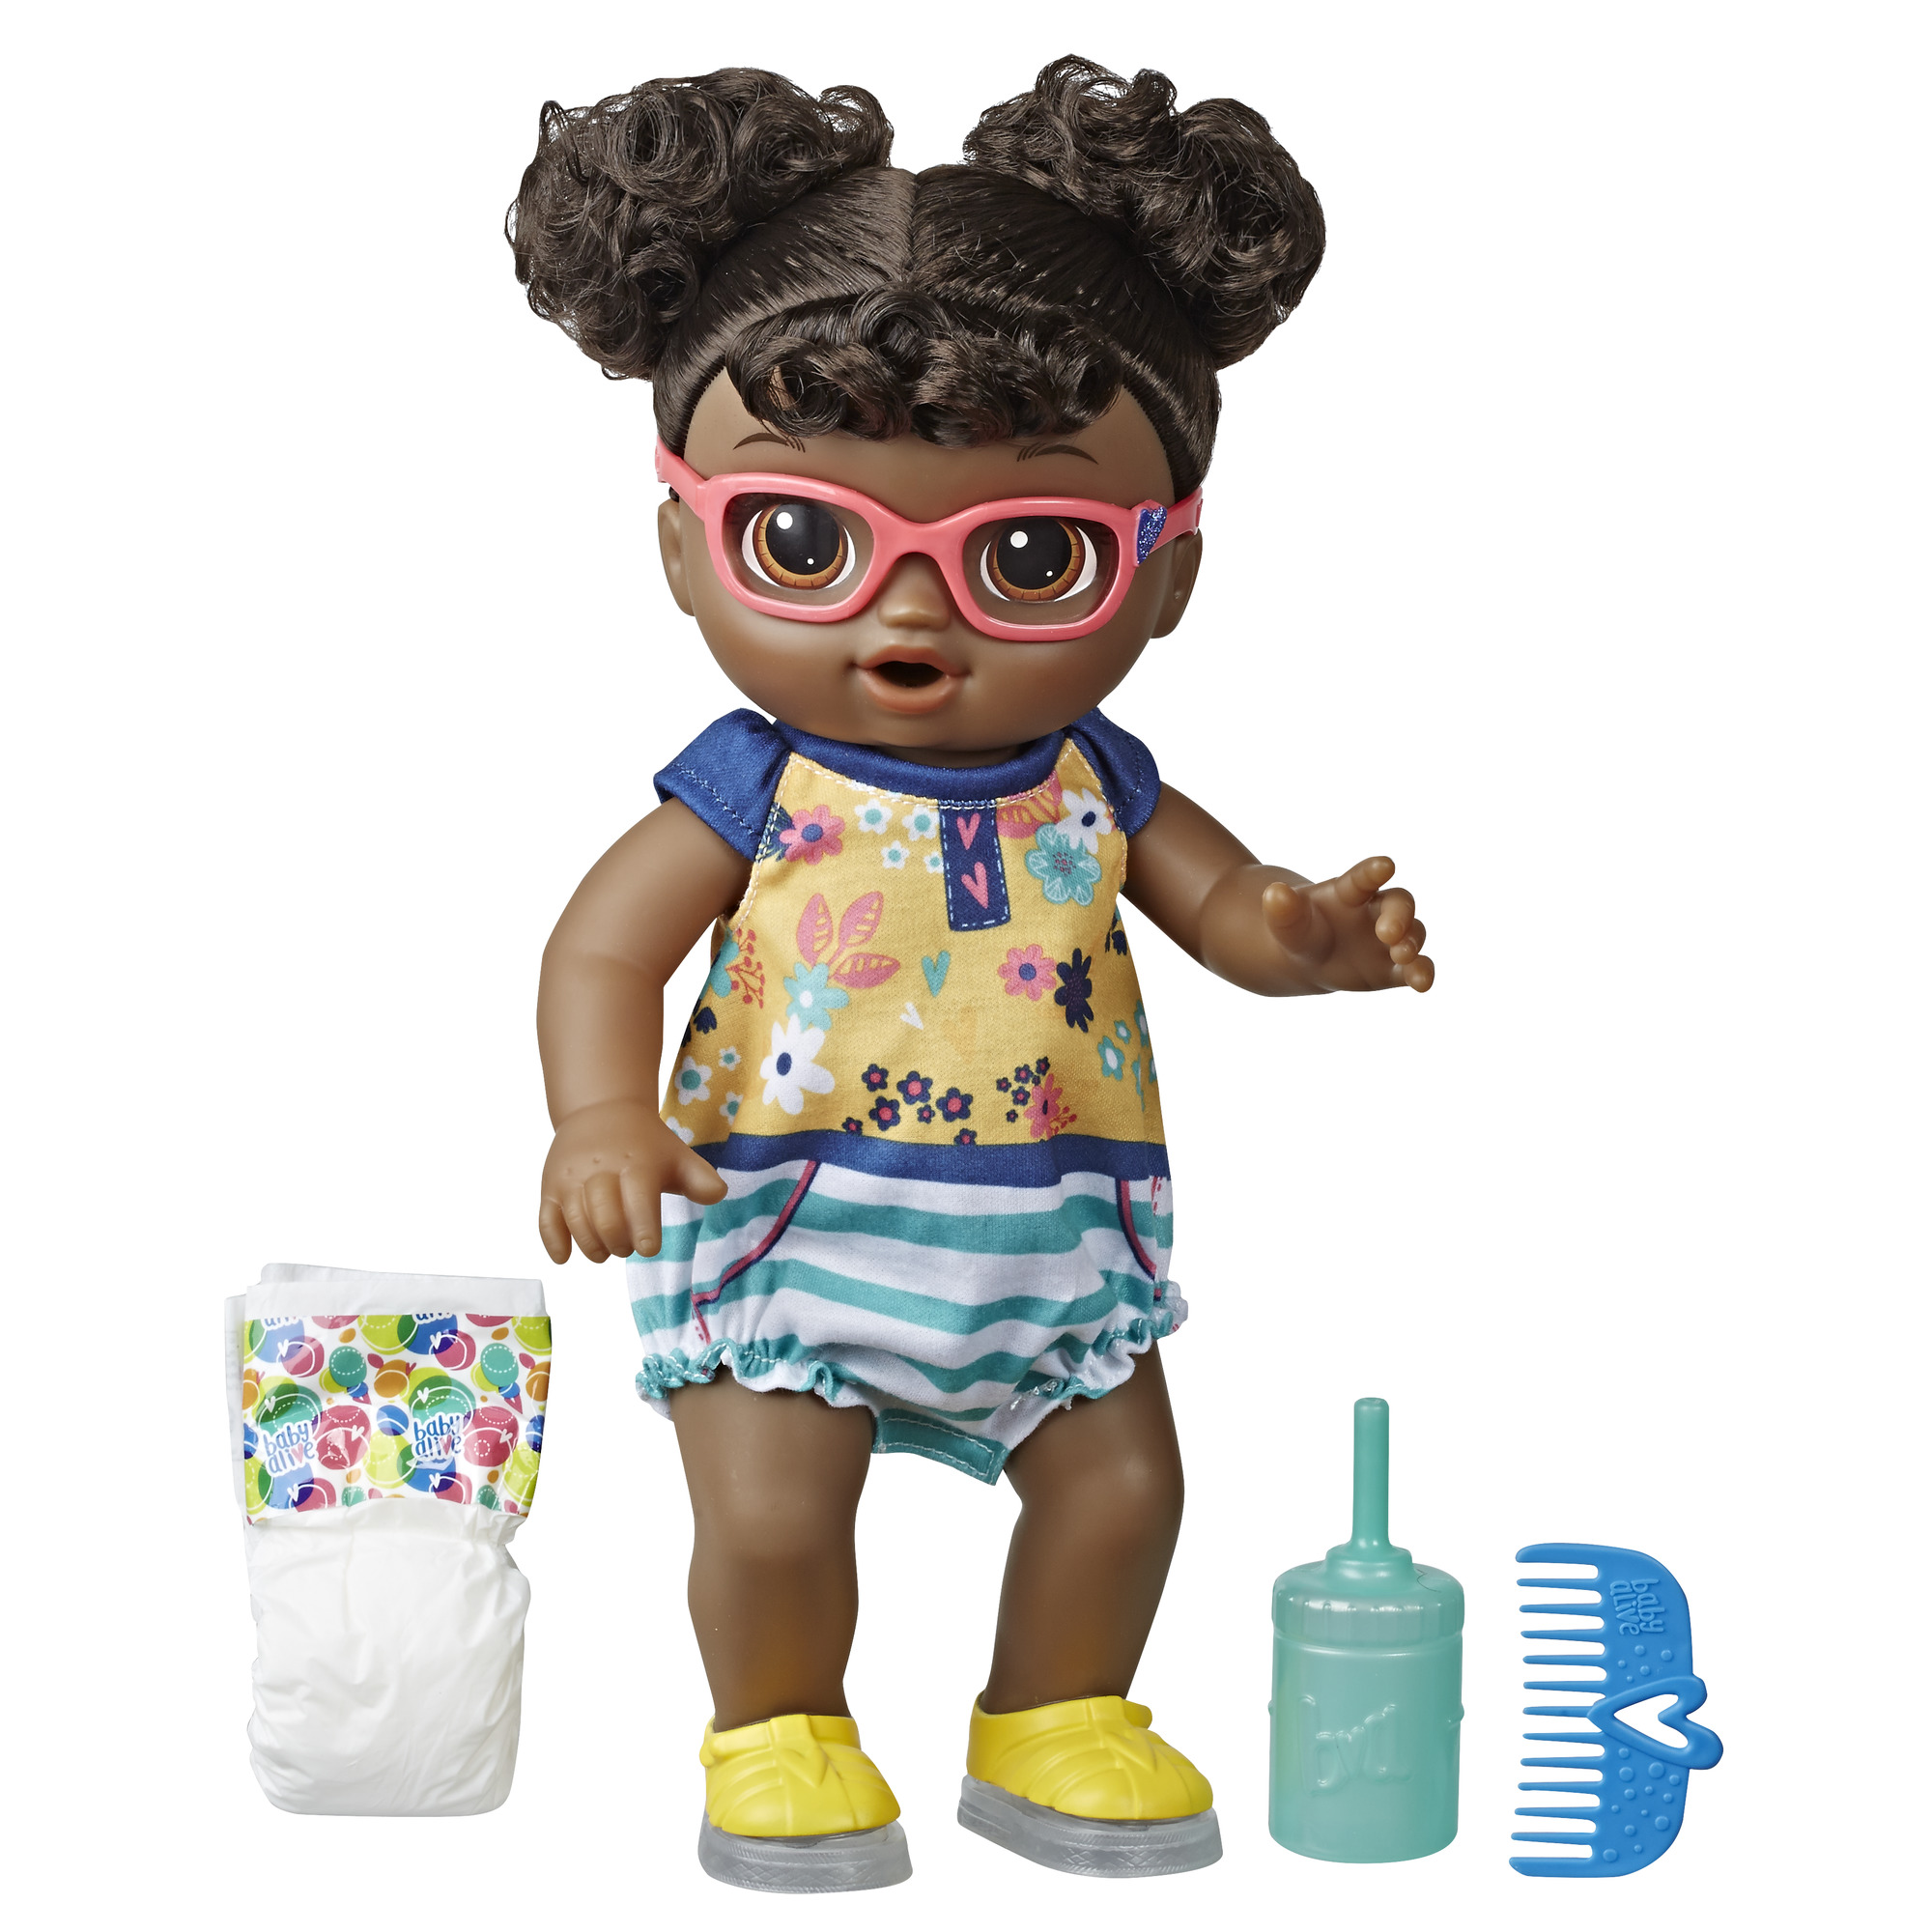 Baby Alive Step 'n Giggle Baby (Black Hair), for Ages 3 and Up